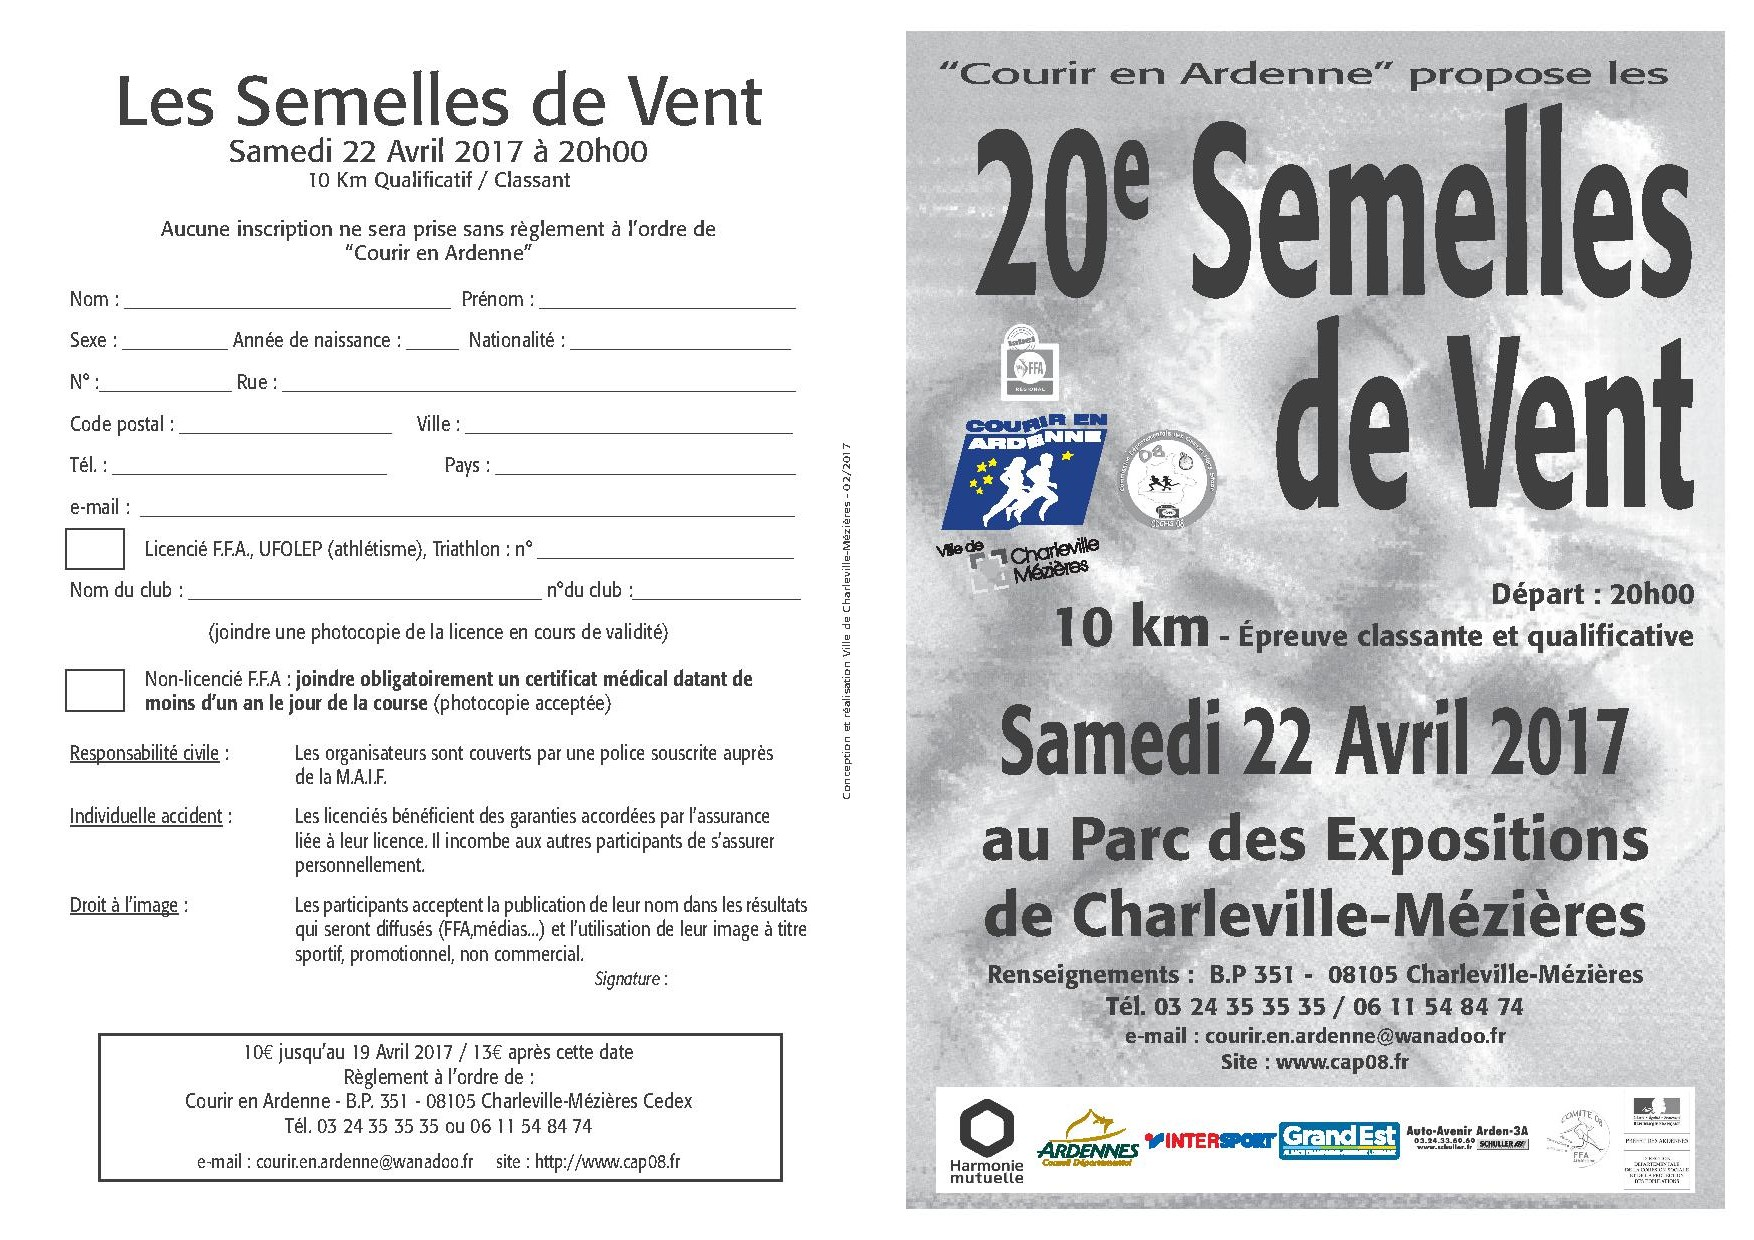 Charleville mezieres code postal with charleville mezieres code postal - Charleville mezieres code postal ...